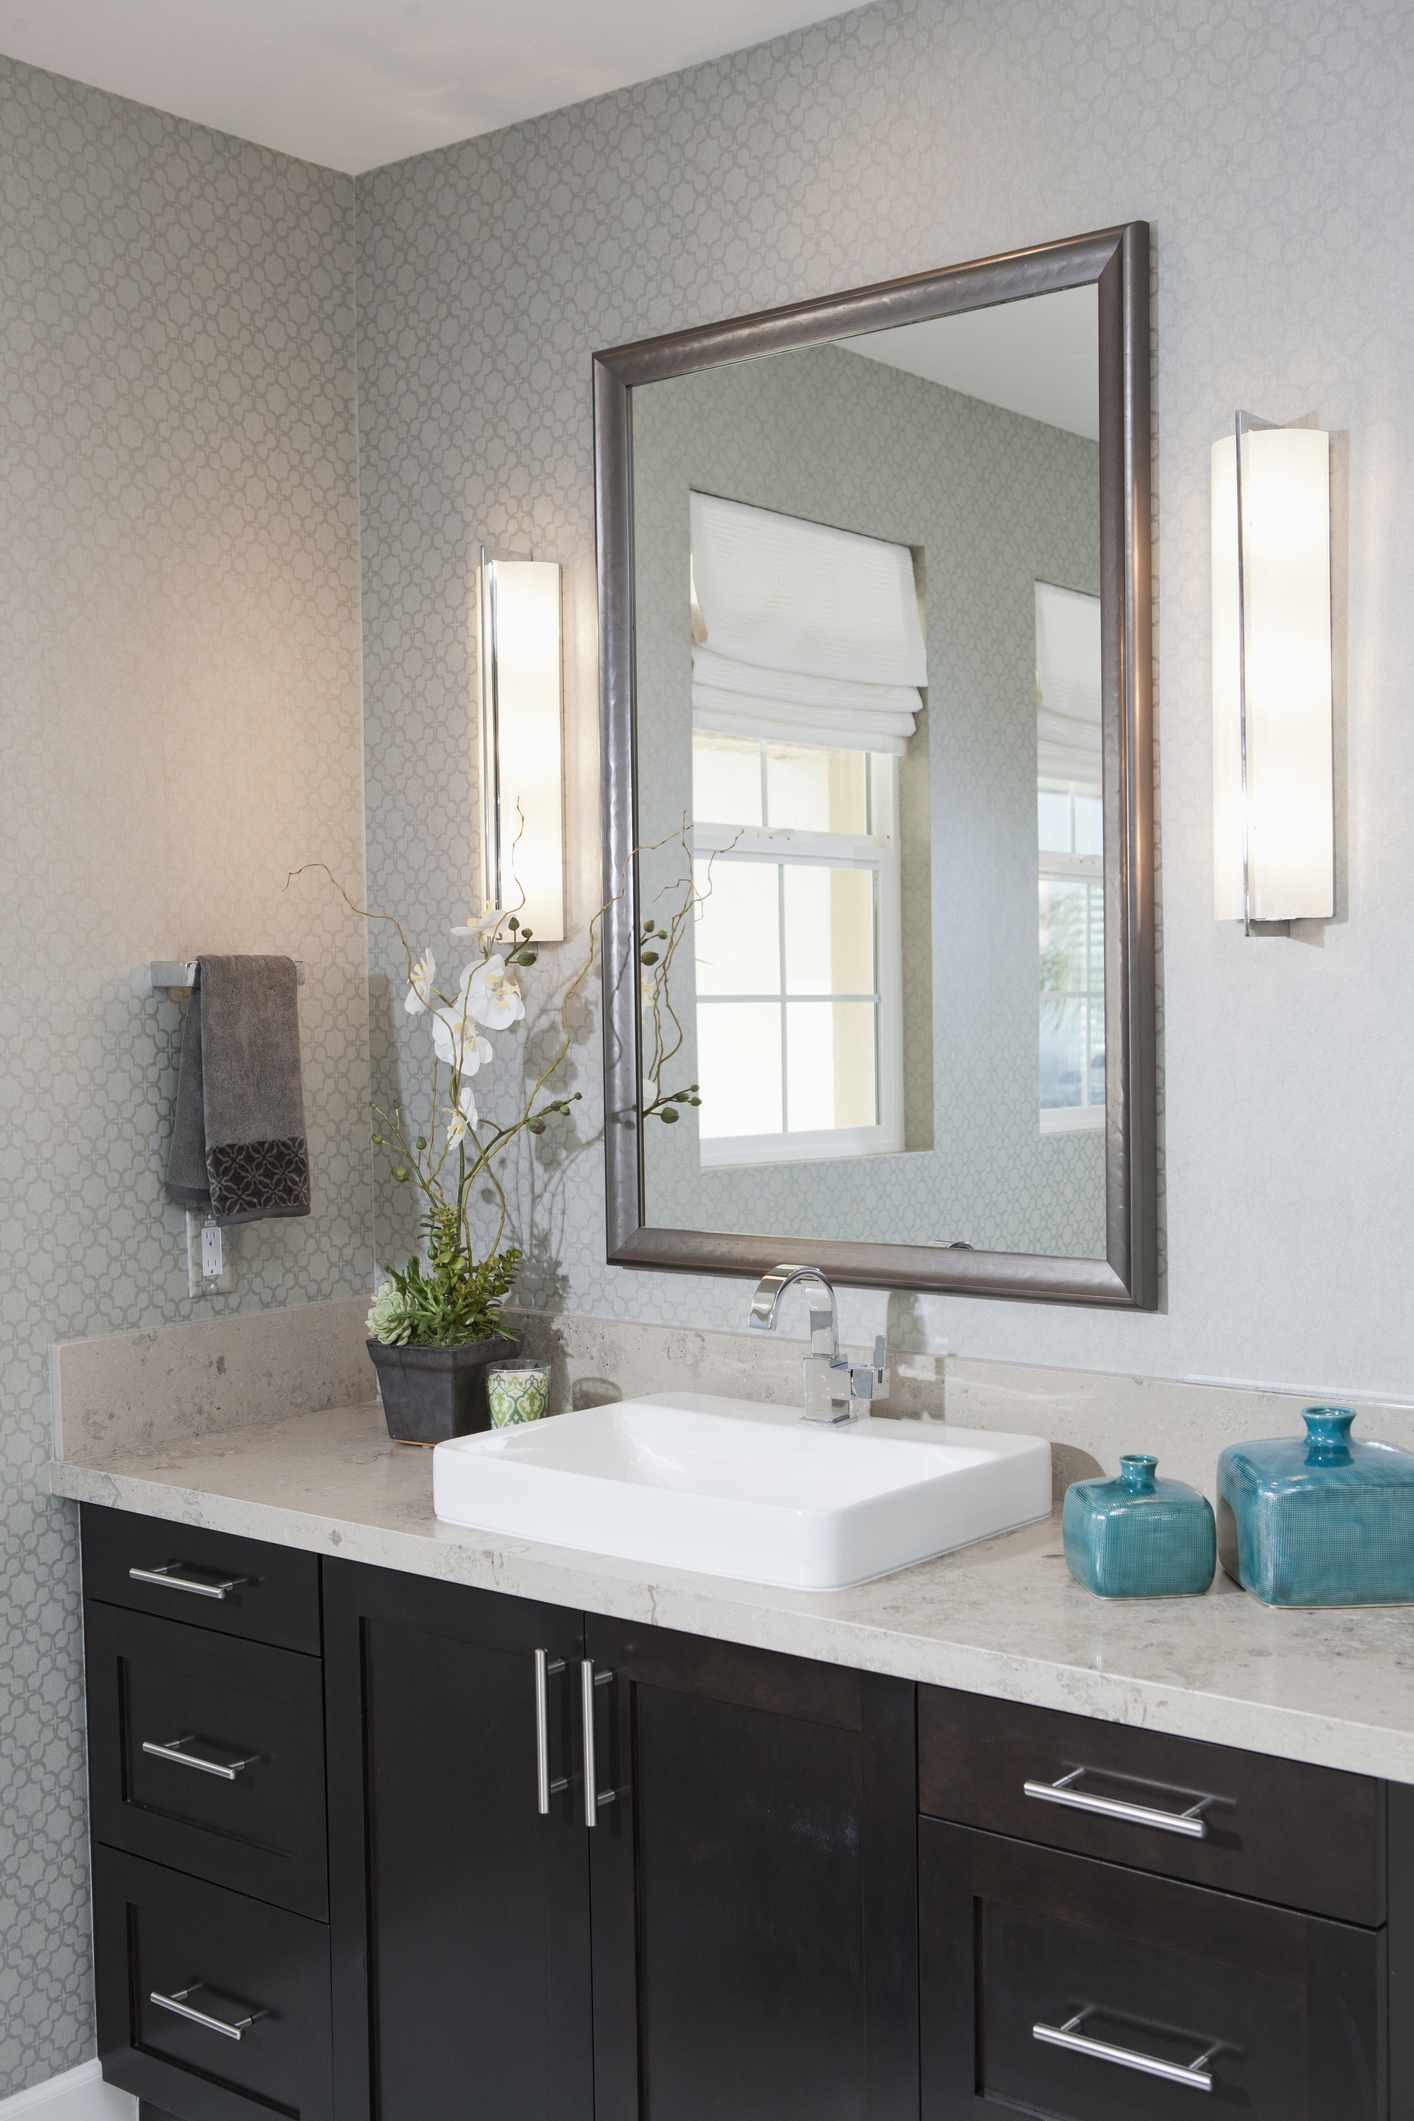 Bathroom Vanity Cabinets And Sinks